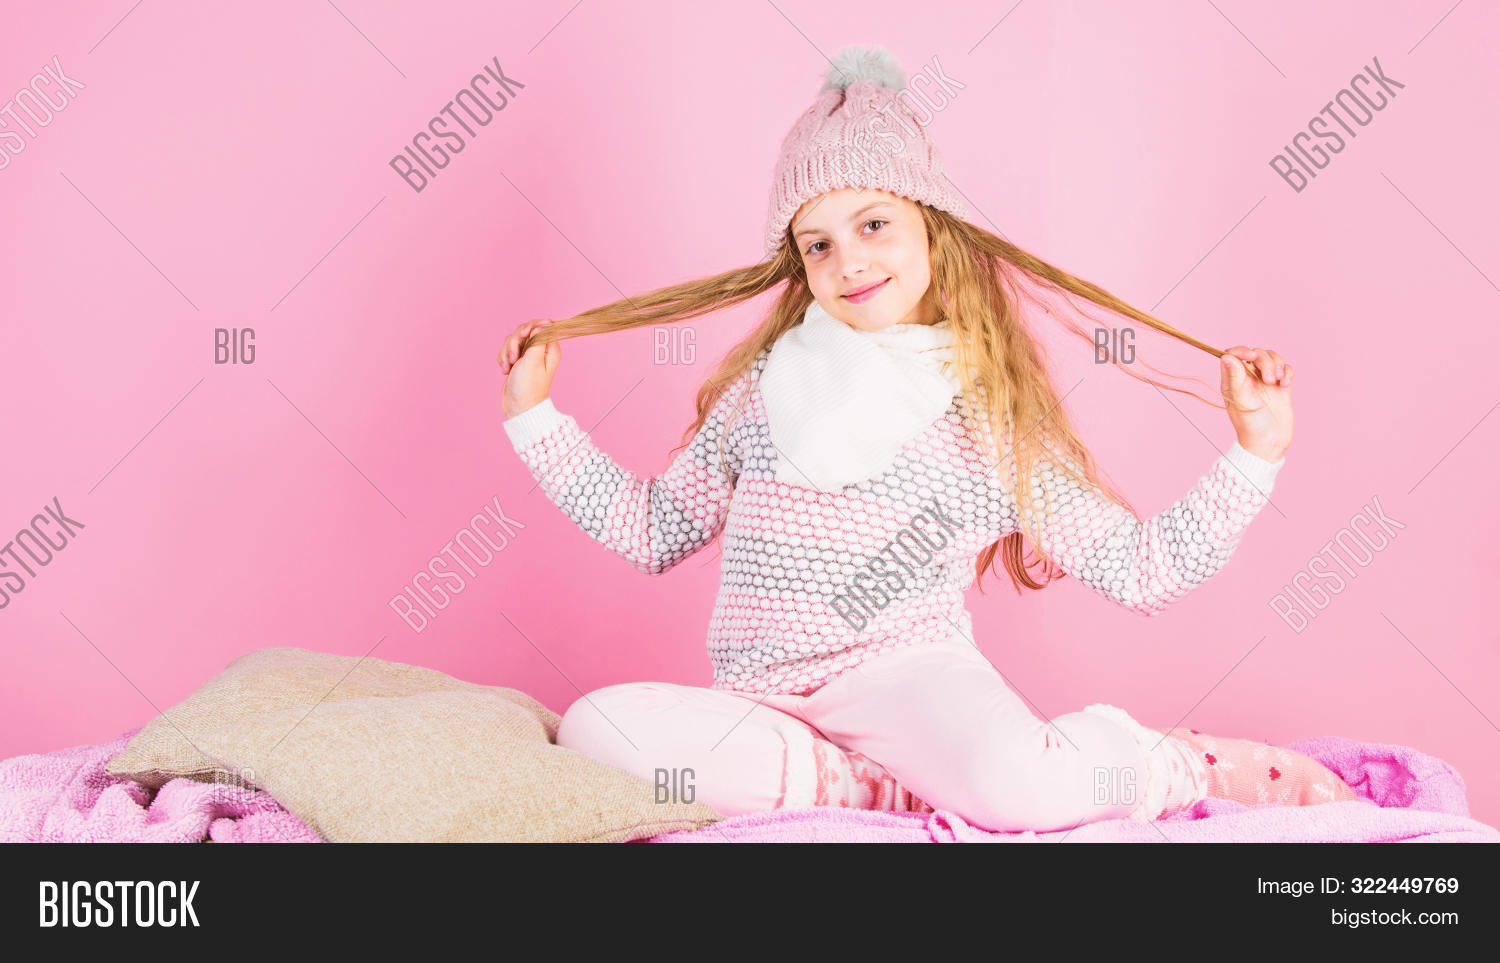 accessory,adorable,autumn,autumnal,baby,background,beauty,care,caucasian,child,childhood,clothes,cold,comfortable,concept,conditioner,cozy,cute,detail,face,fall,fashion,fashionable,girl,hair,hat,kid,knitted,long,pink,play,scarf,season,seasonal,shampoo,small,smile,style,stylish,treatment,trend,wardrobe,warm,wear,weather,winter